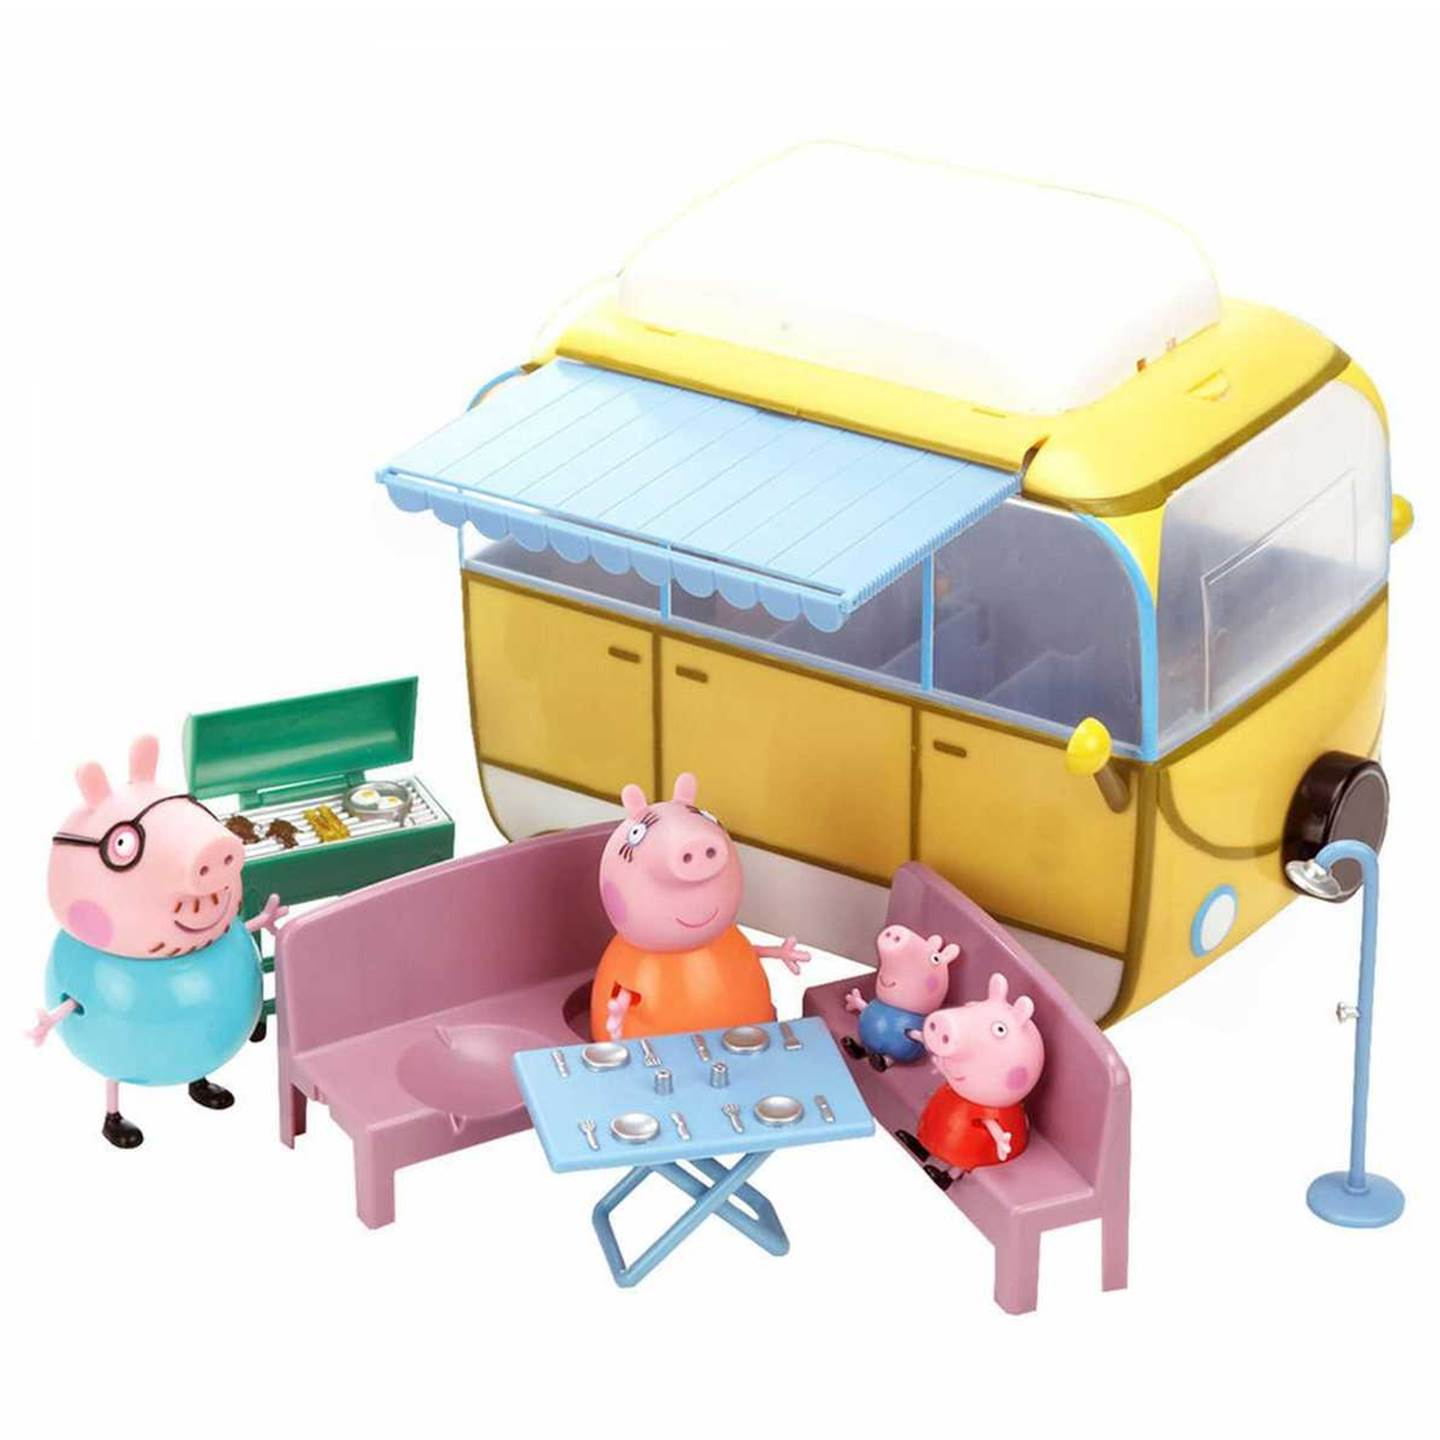 PP120533200000 Peppa Pig Campervan Play Set (4)